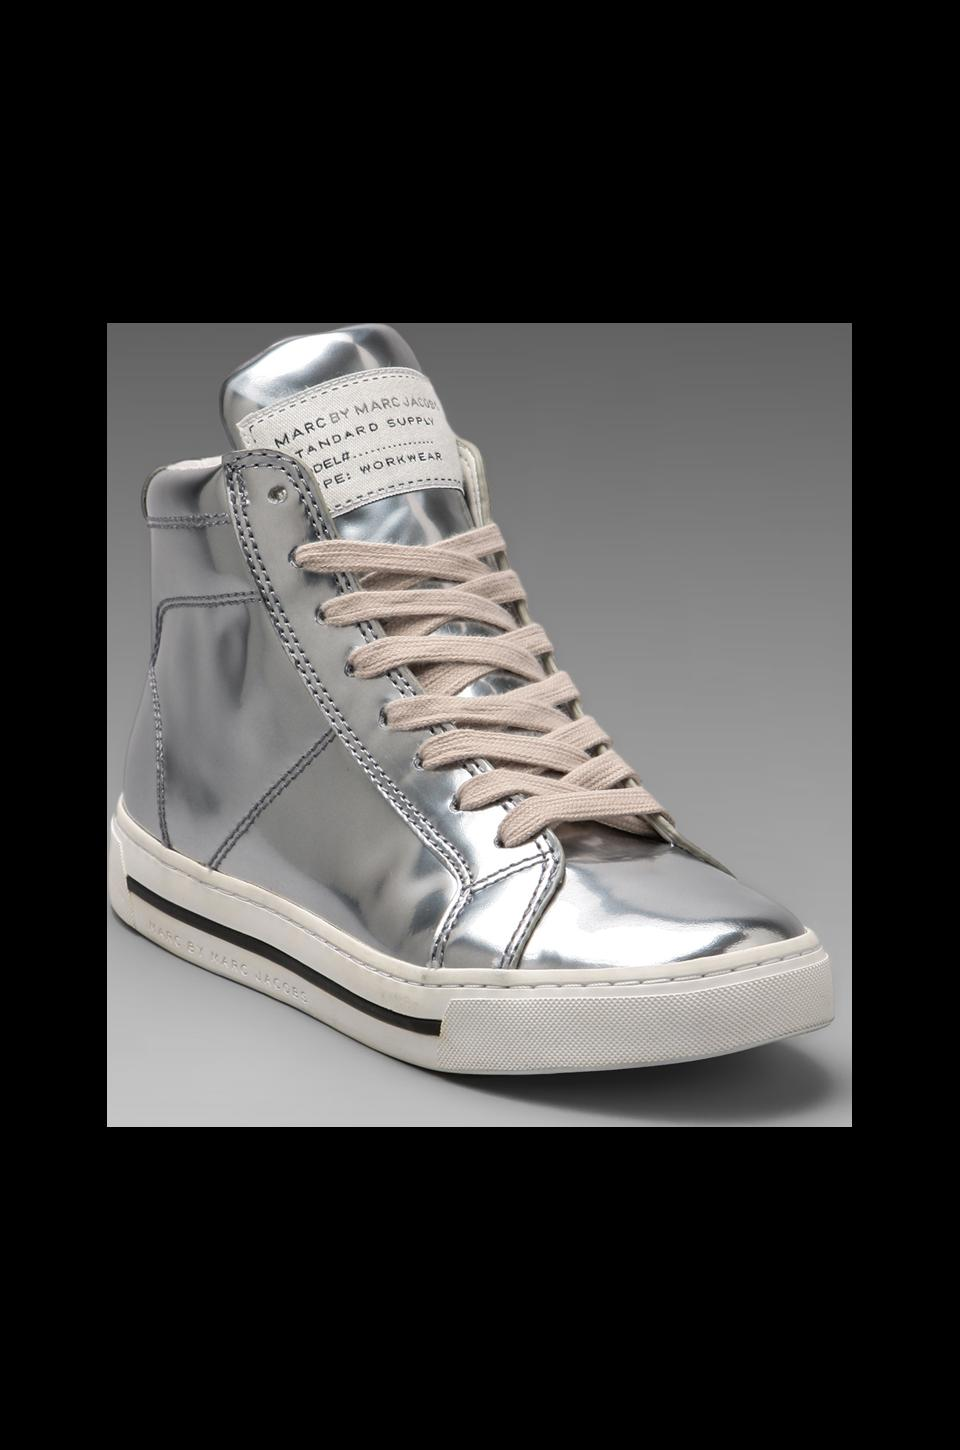 Marc by Marc Jacobs Mirror Reflective High Top Sneaker in Silver